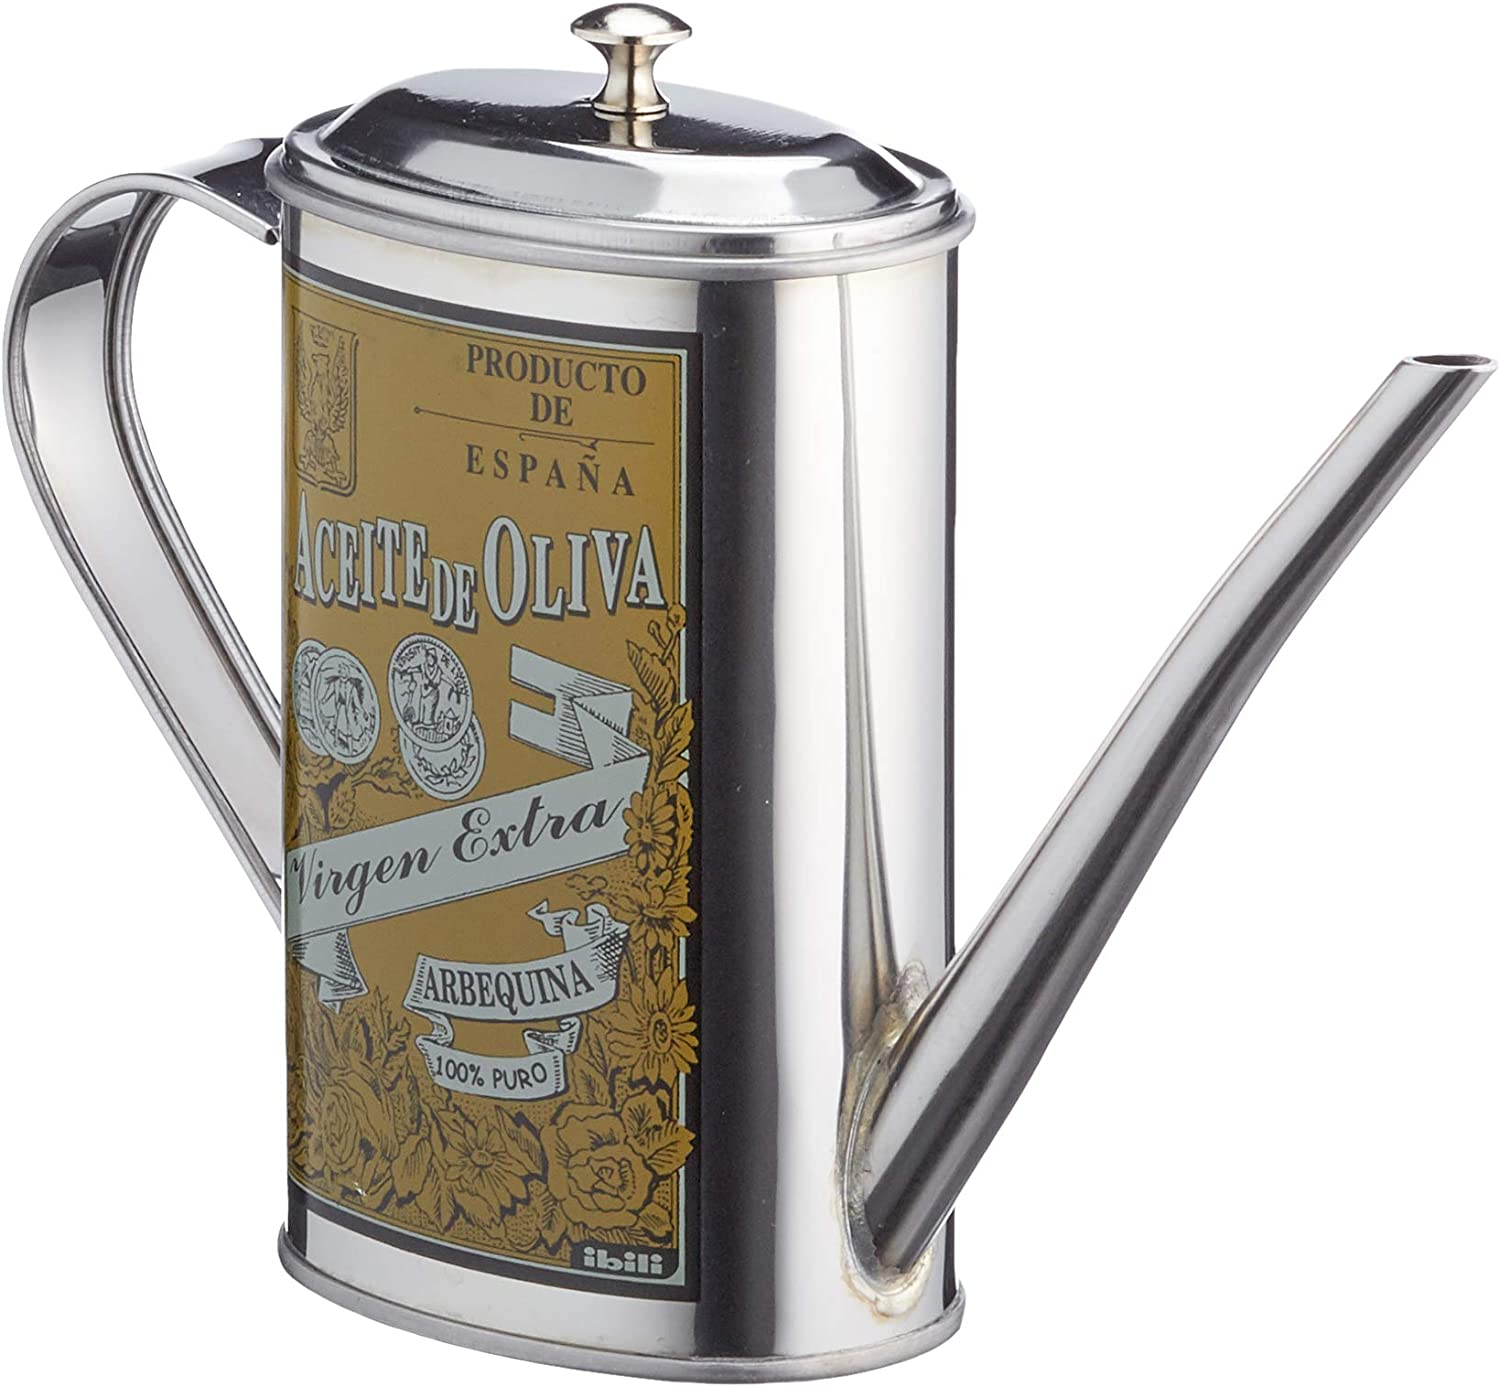 Silver Ibili  705105 stainless steel Olive Oil can Arbequina